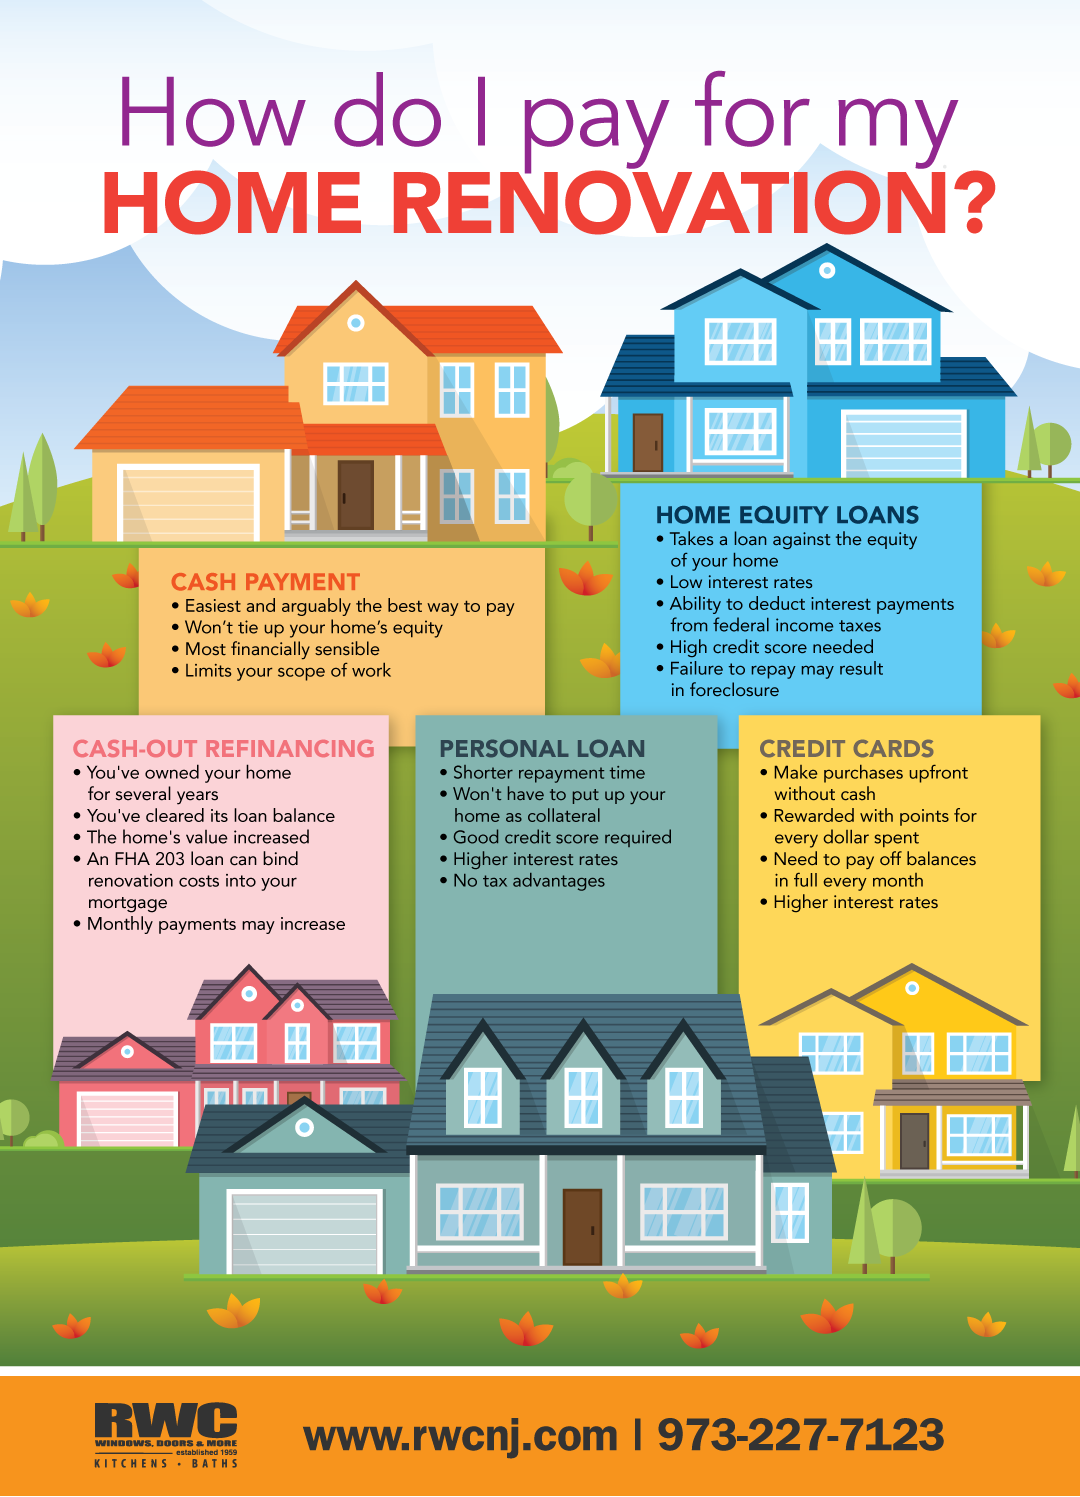 How Do I Pay for Home Renovations? [INFOGRAPHIC | Our RWC Blog ...